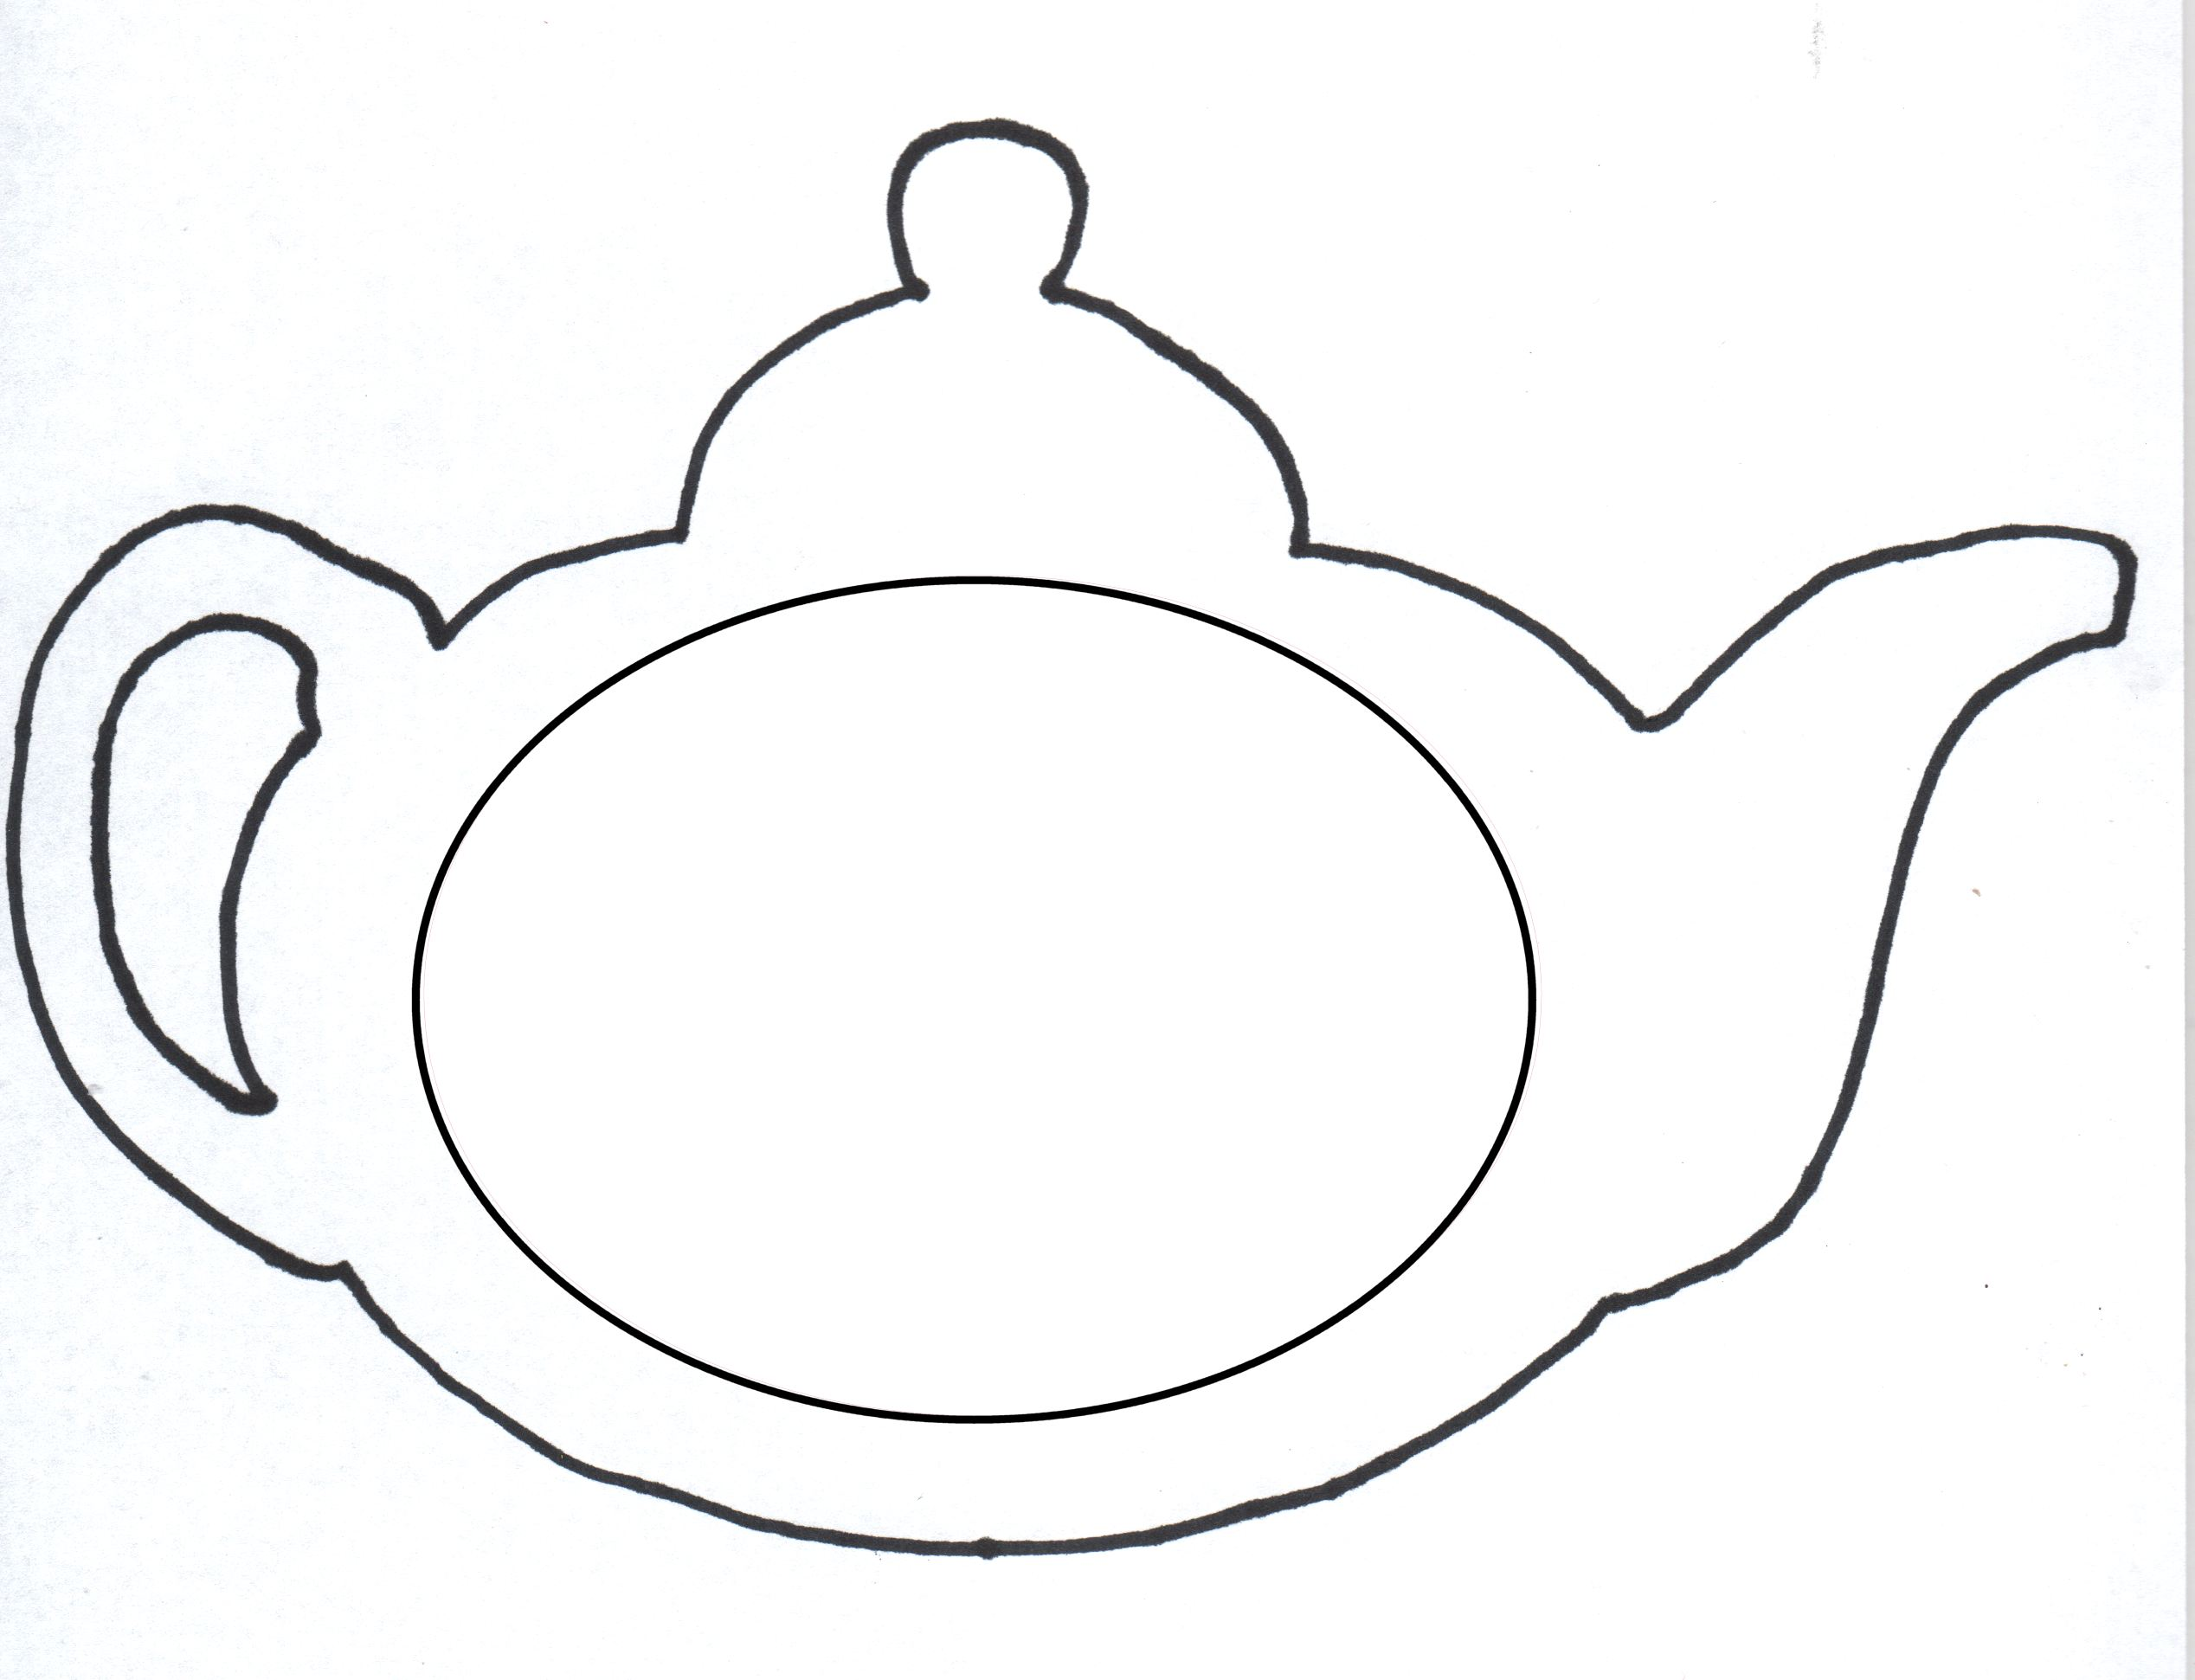 Witty image intended for teapot template printable